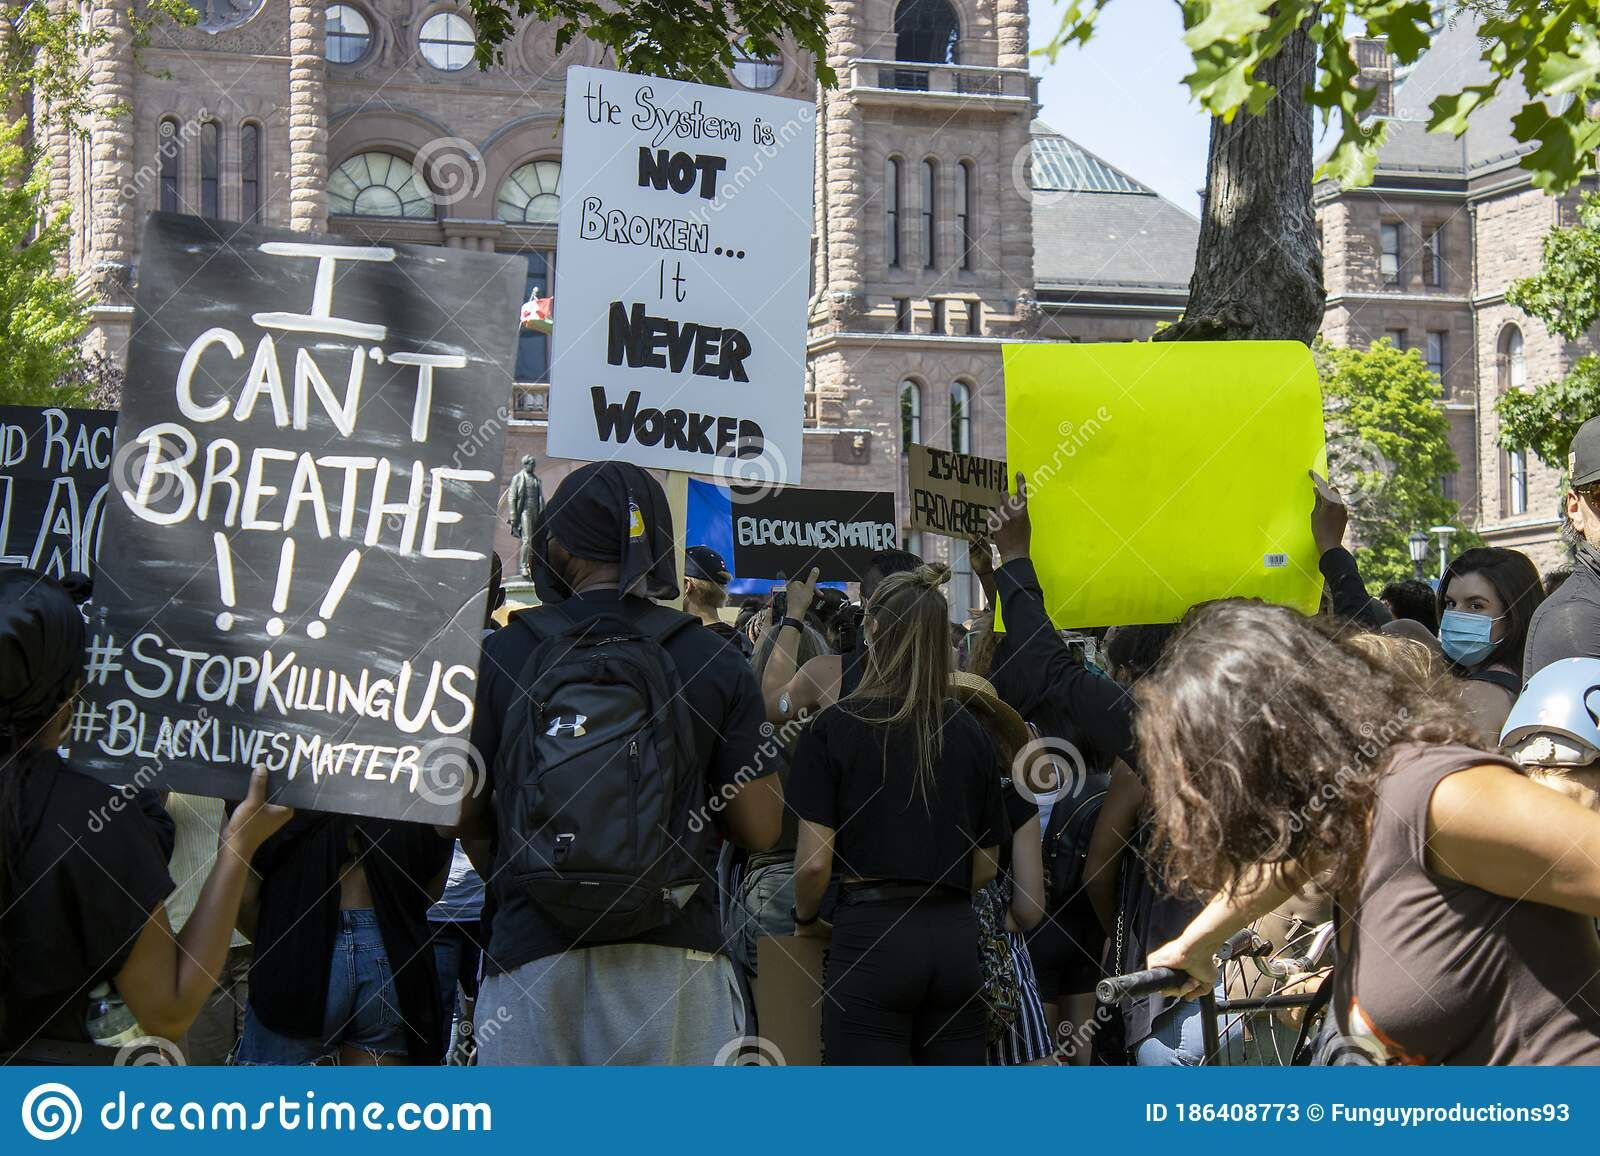 Pin By Dreamstime Stock Photos On Black Lives Matter Black Lives Matter Black Lives Matter Protest Black Lives